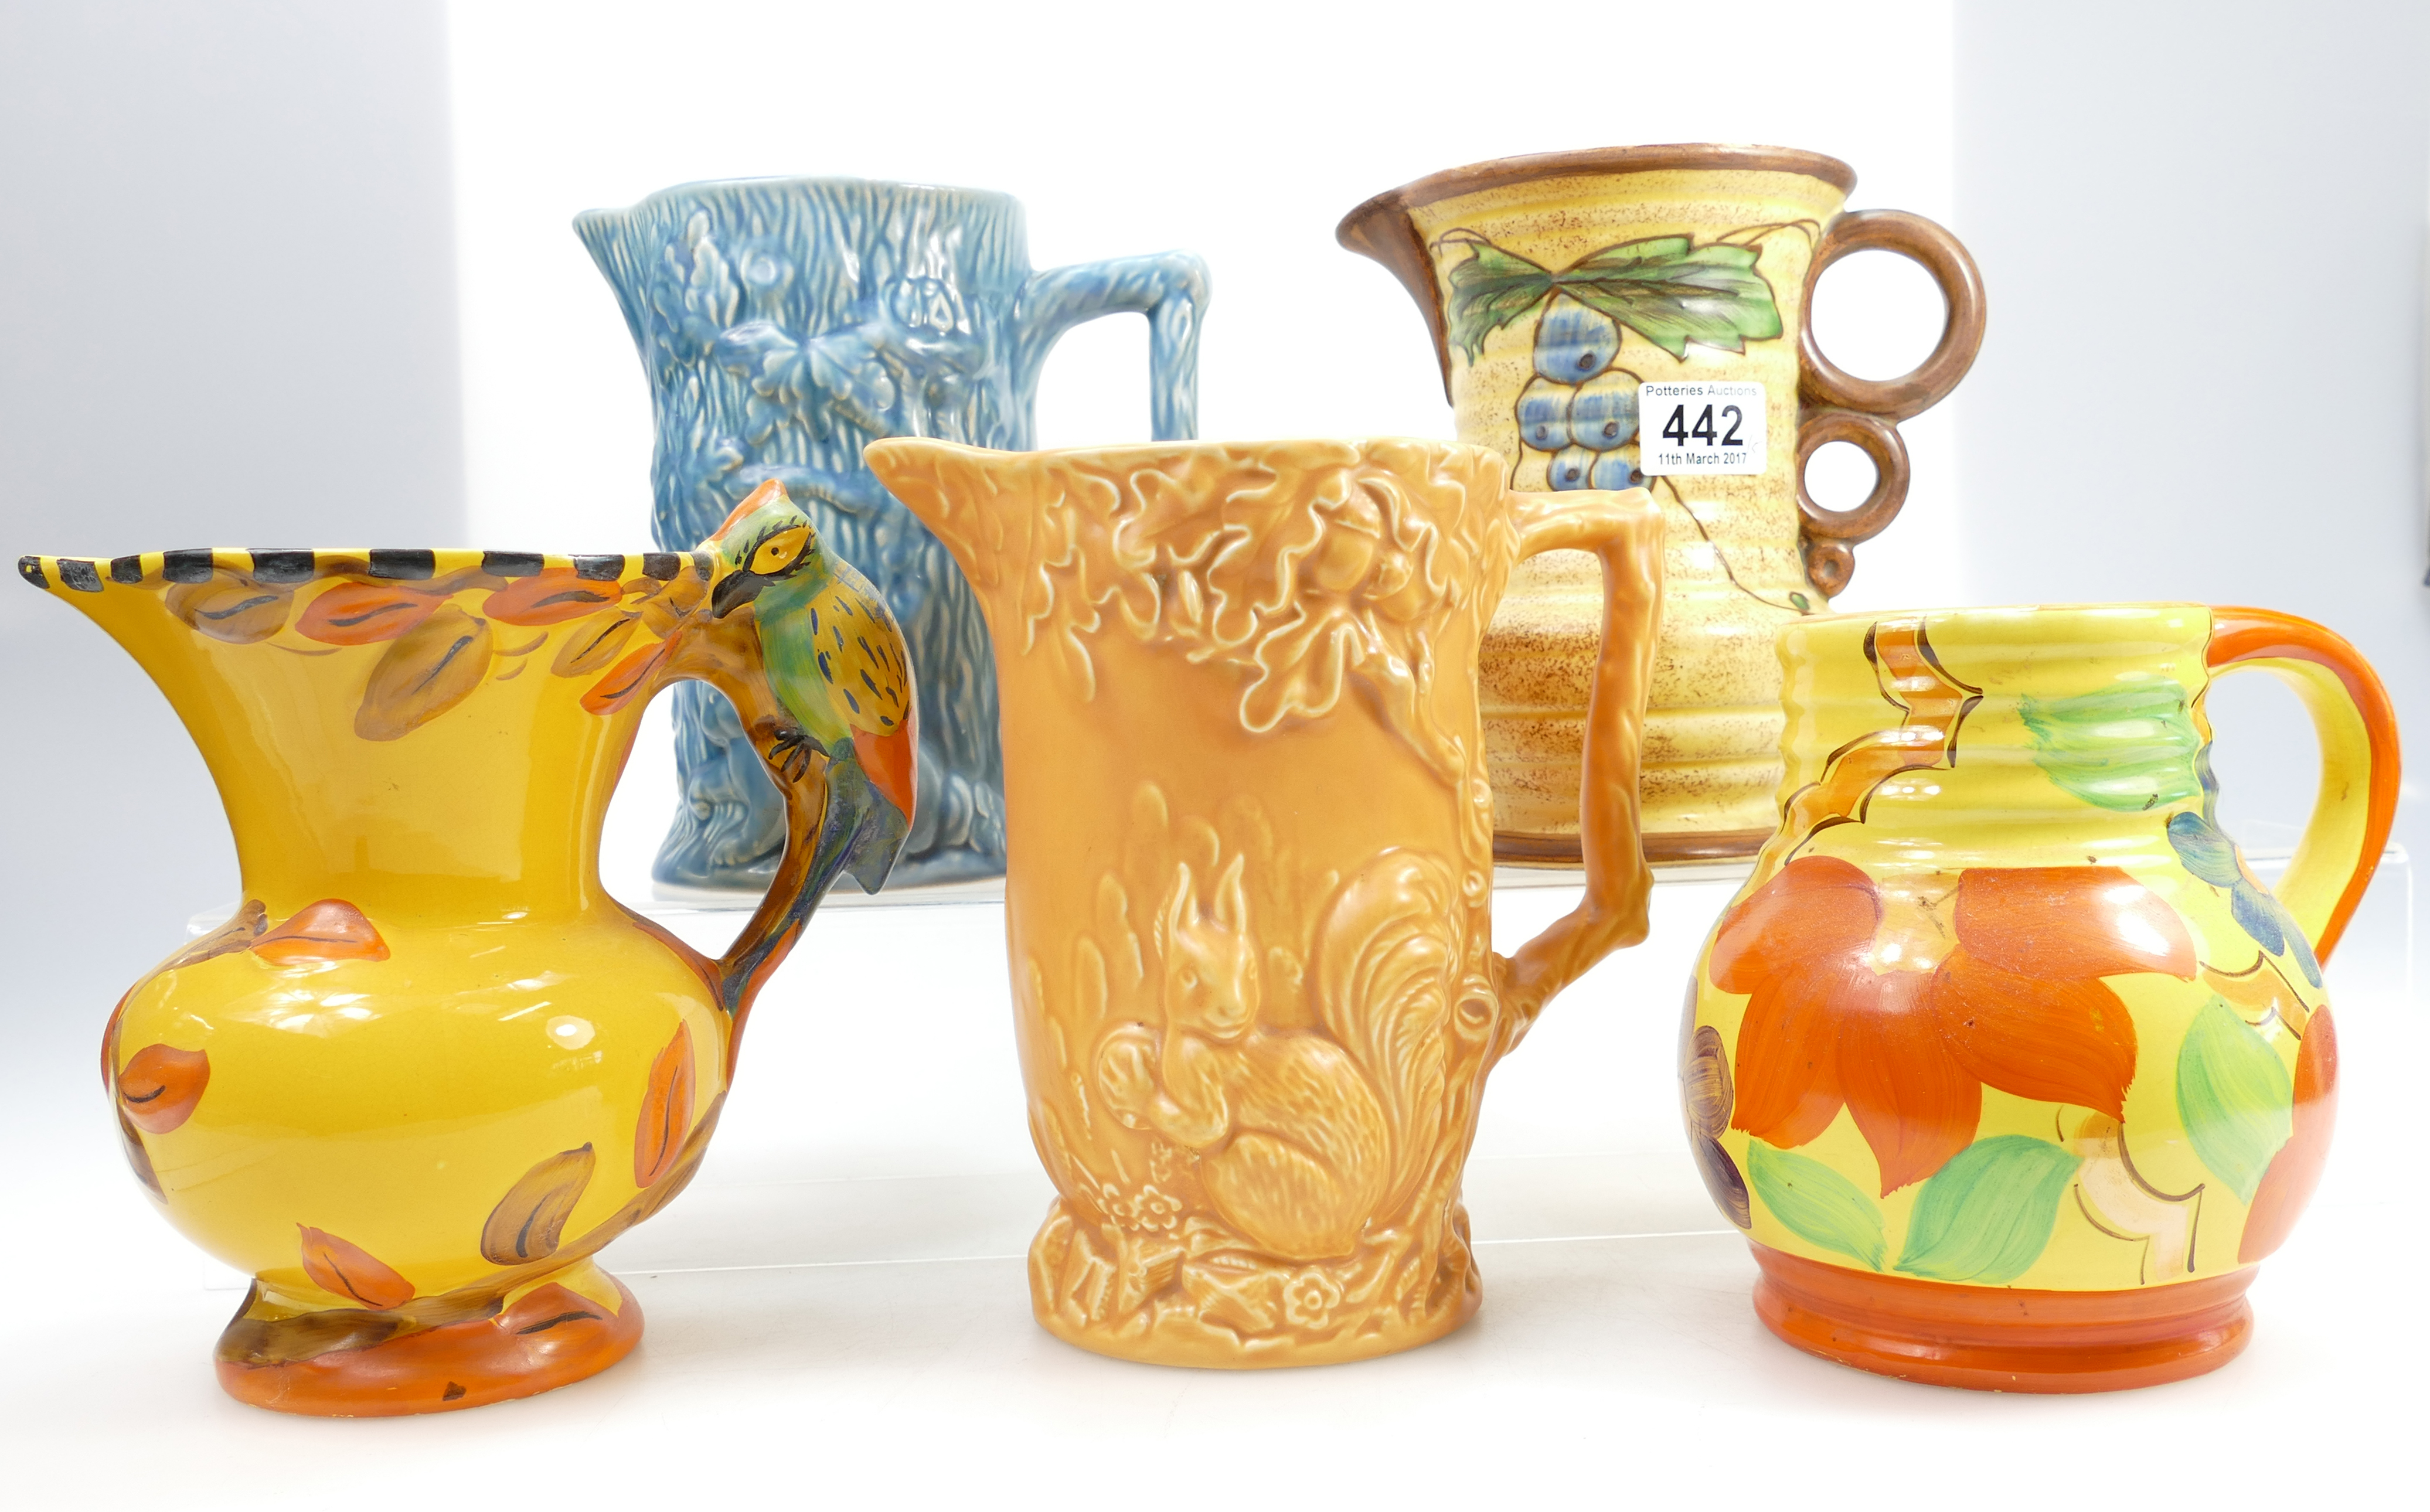 A Collection Of Various Wadeheath 1930s Jugs Including Birds Art Deco Styles Etc 5